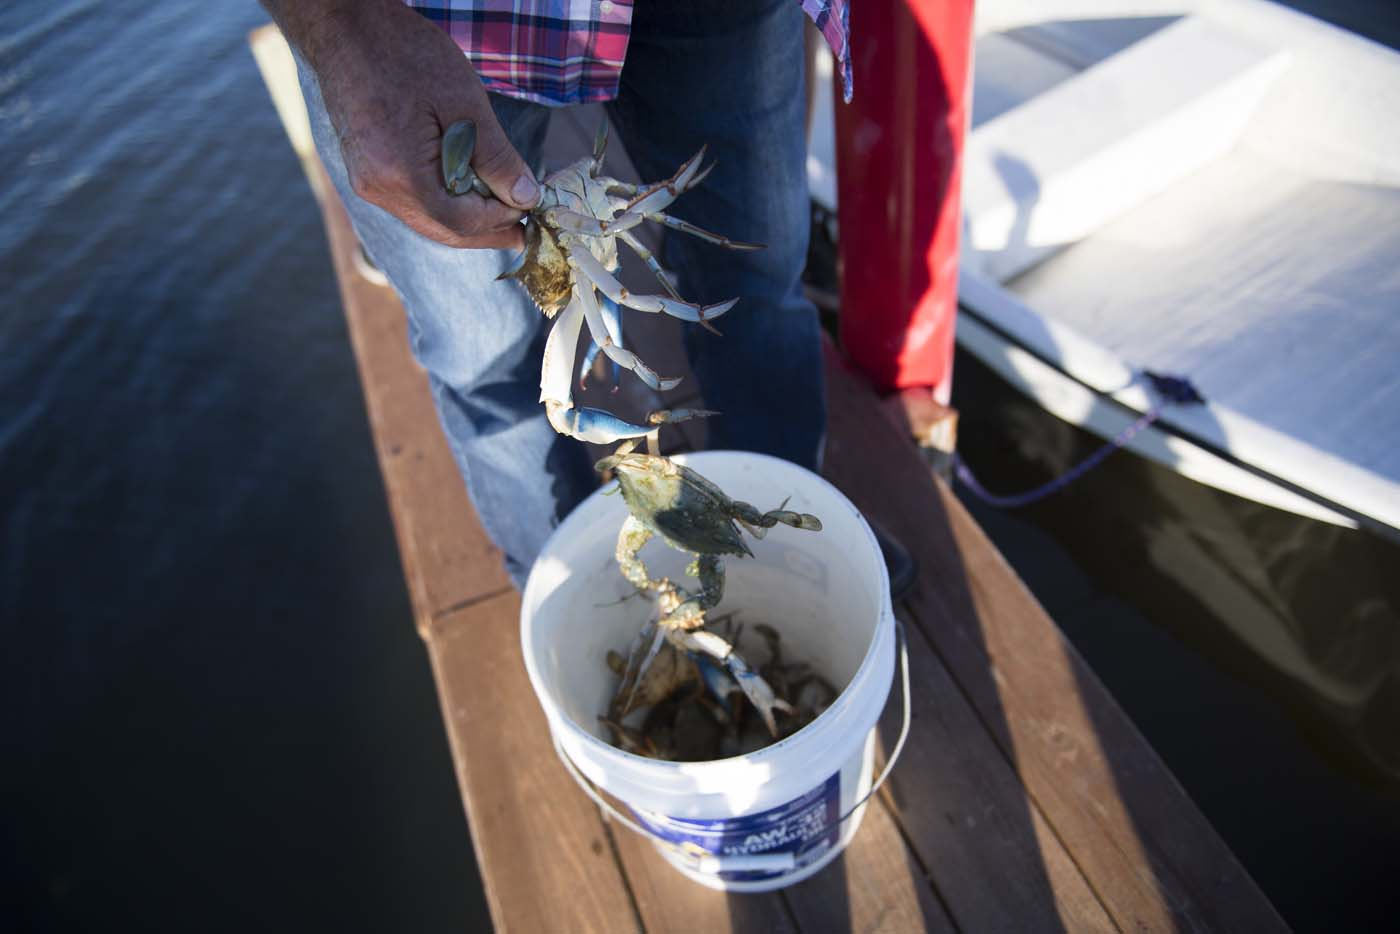 William Eskridge pulls just caught crabs from a bucket in Tangier, Virginia, May 15, 2017, where climate change and rising sea levels threaten the inhabitants of the slowly sinking island. Now measuring 1.2 square miles, Tangier Island has lost two-thirds of its landmass since 1850. If nothing is done to stop the erosion, it may disappear completely in the next 40 years. / AFP PHOTO / JIM WATSON